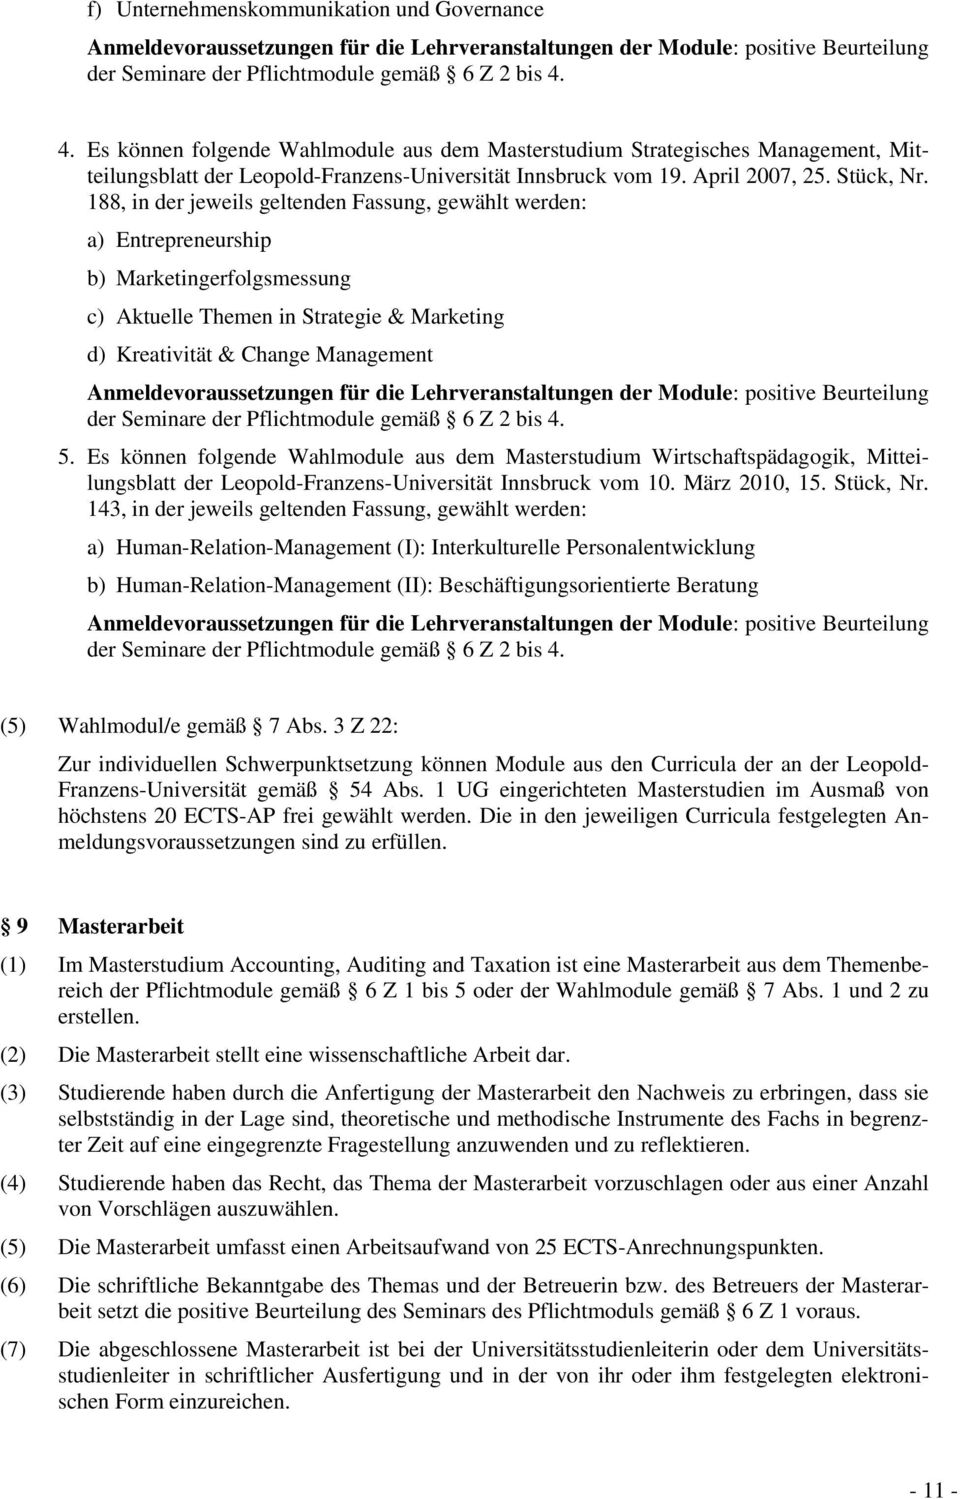 188, in der jeweils geltenden Fassung, gewählt werden: a) Entrepreneurship b) Marketingerfolgsmessung c) Aktuelle Themen in Strategie & Marketing d) Kreativität & Change Management